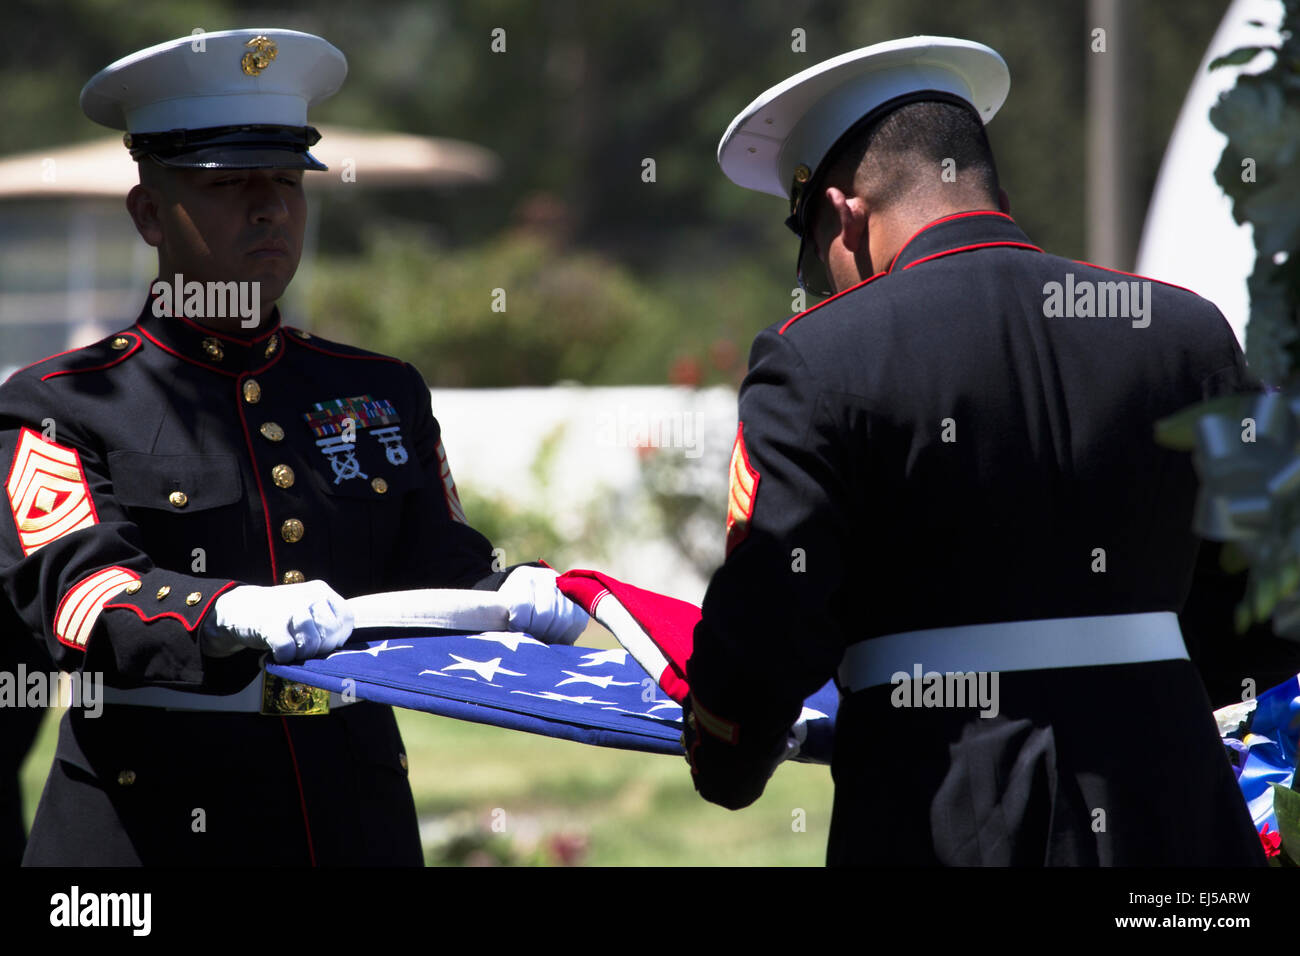 Marine folds flag at Memorial Service for fallen US Soldier, PFC Zach Suarez, 'Honor Mission' on Highway - Stock Image